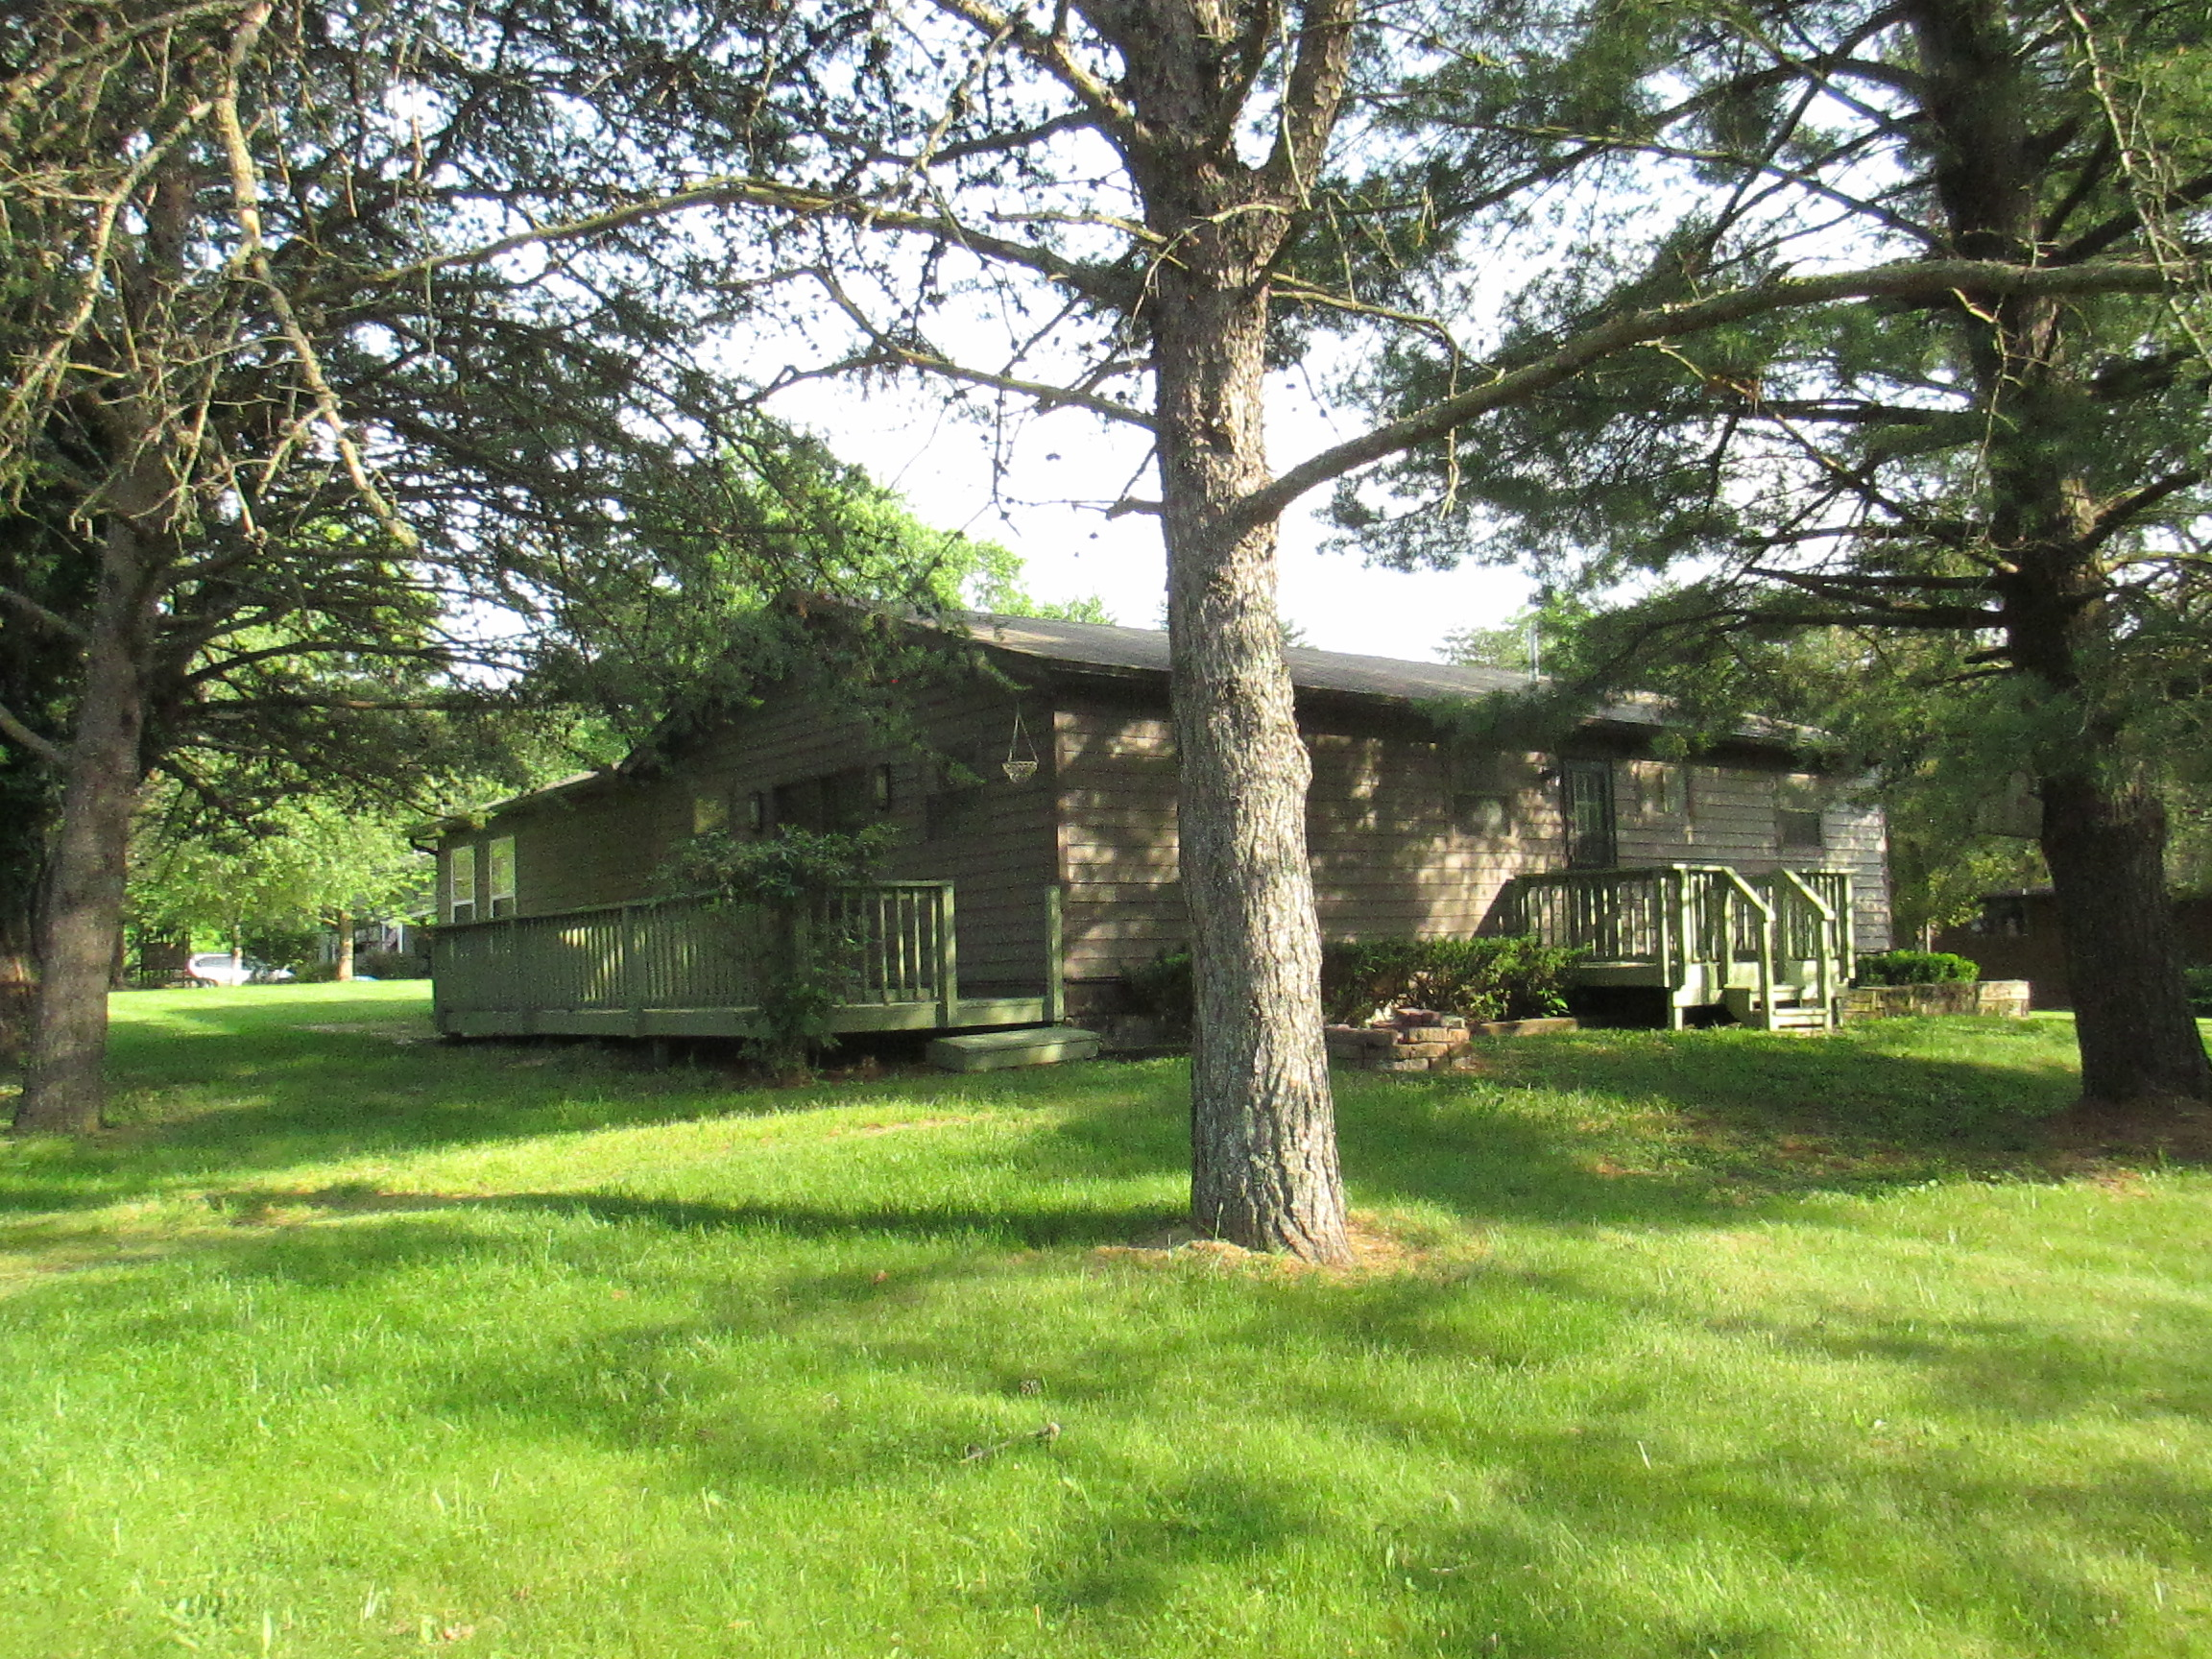 343 Osage - UNDER CONTRACT